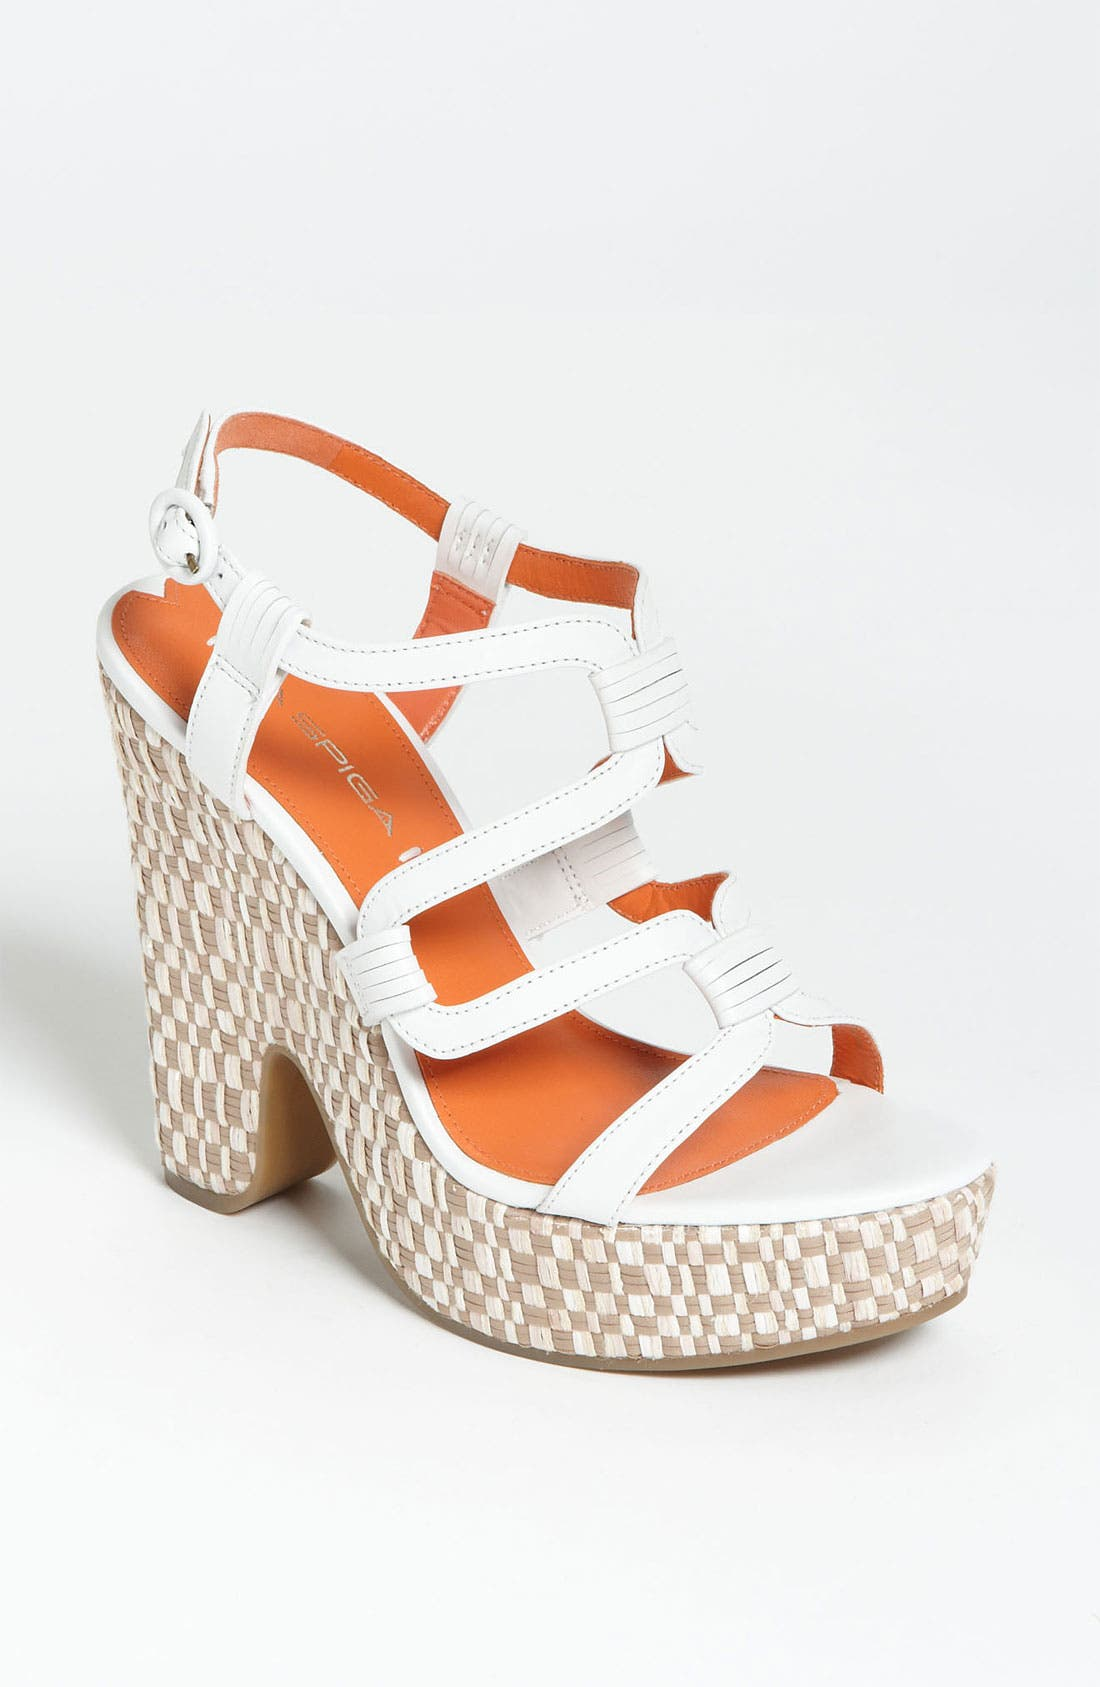 Alternate Image 1 Selected - Via Spiga 'Cai' Wedge Sandal